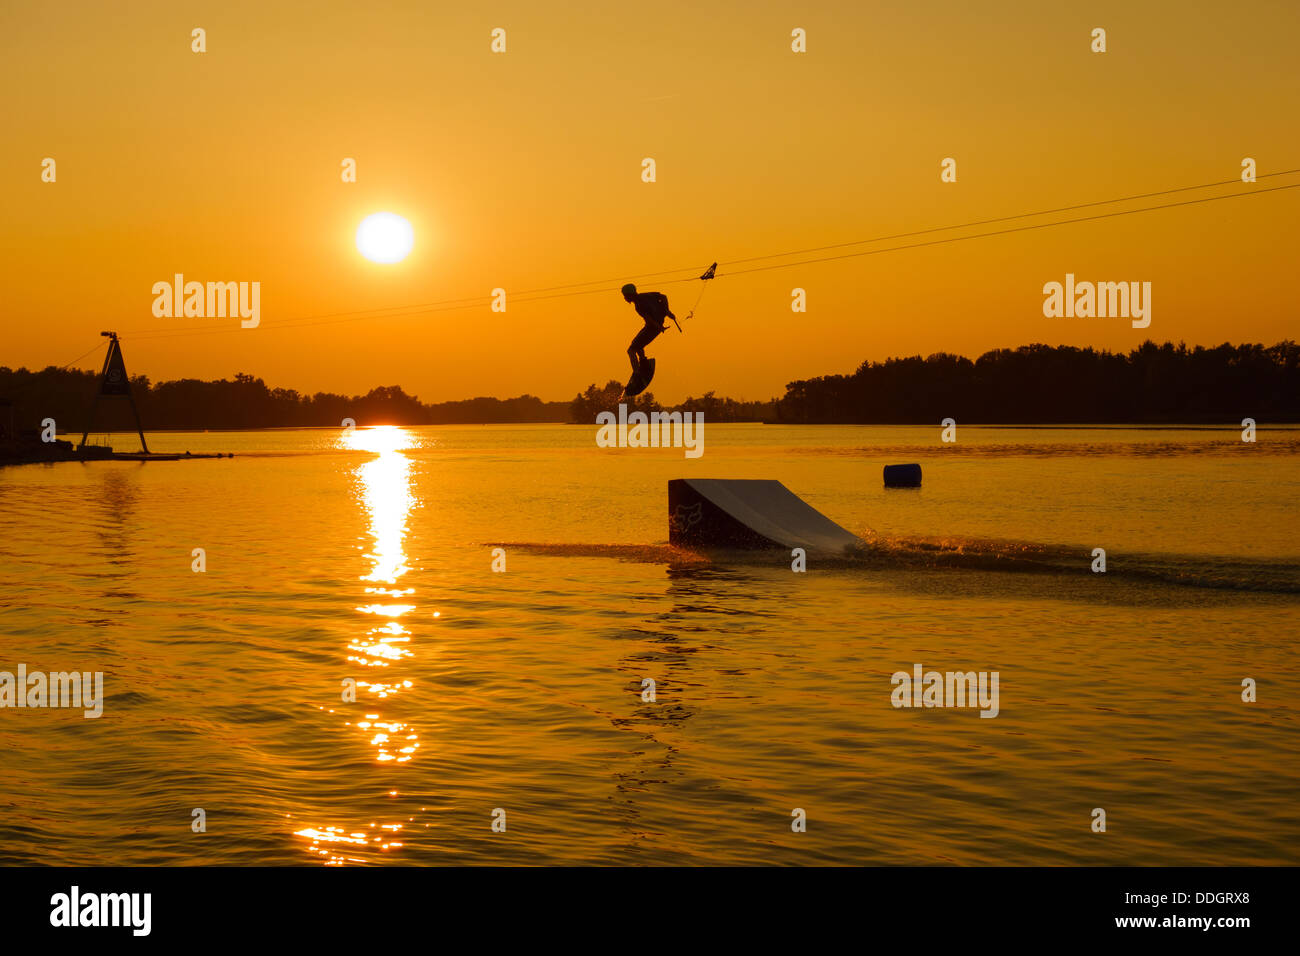 Silhouette of a man cable wakeboarding - Stock Image